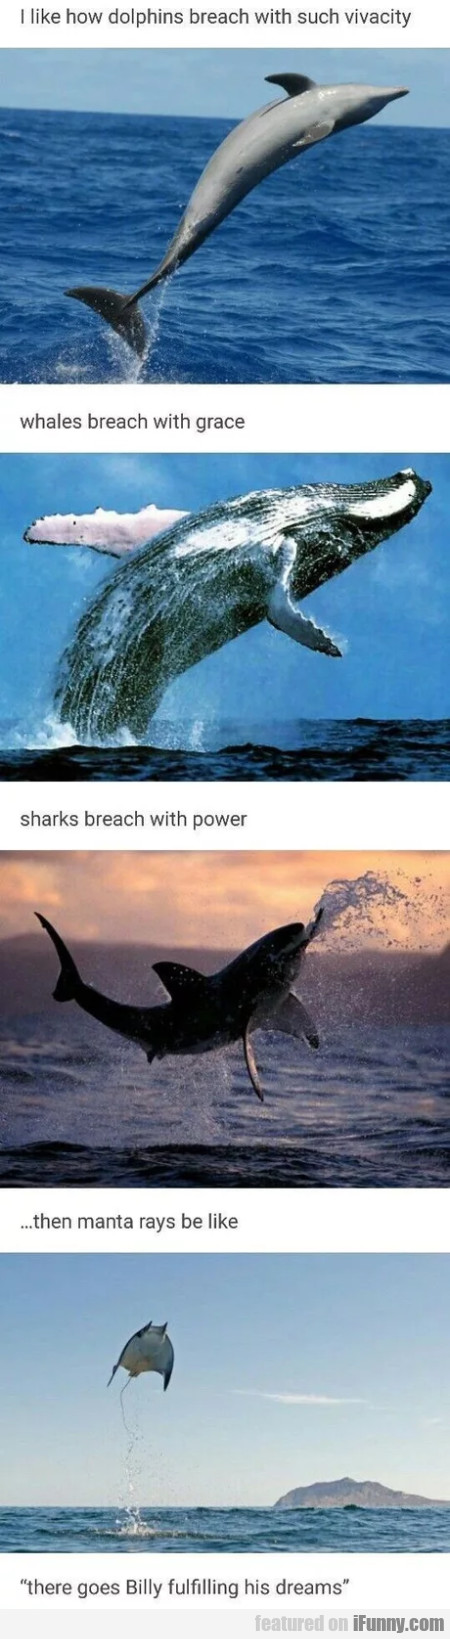 I Like How Dolphins Breach With Such Vivacity...